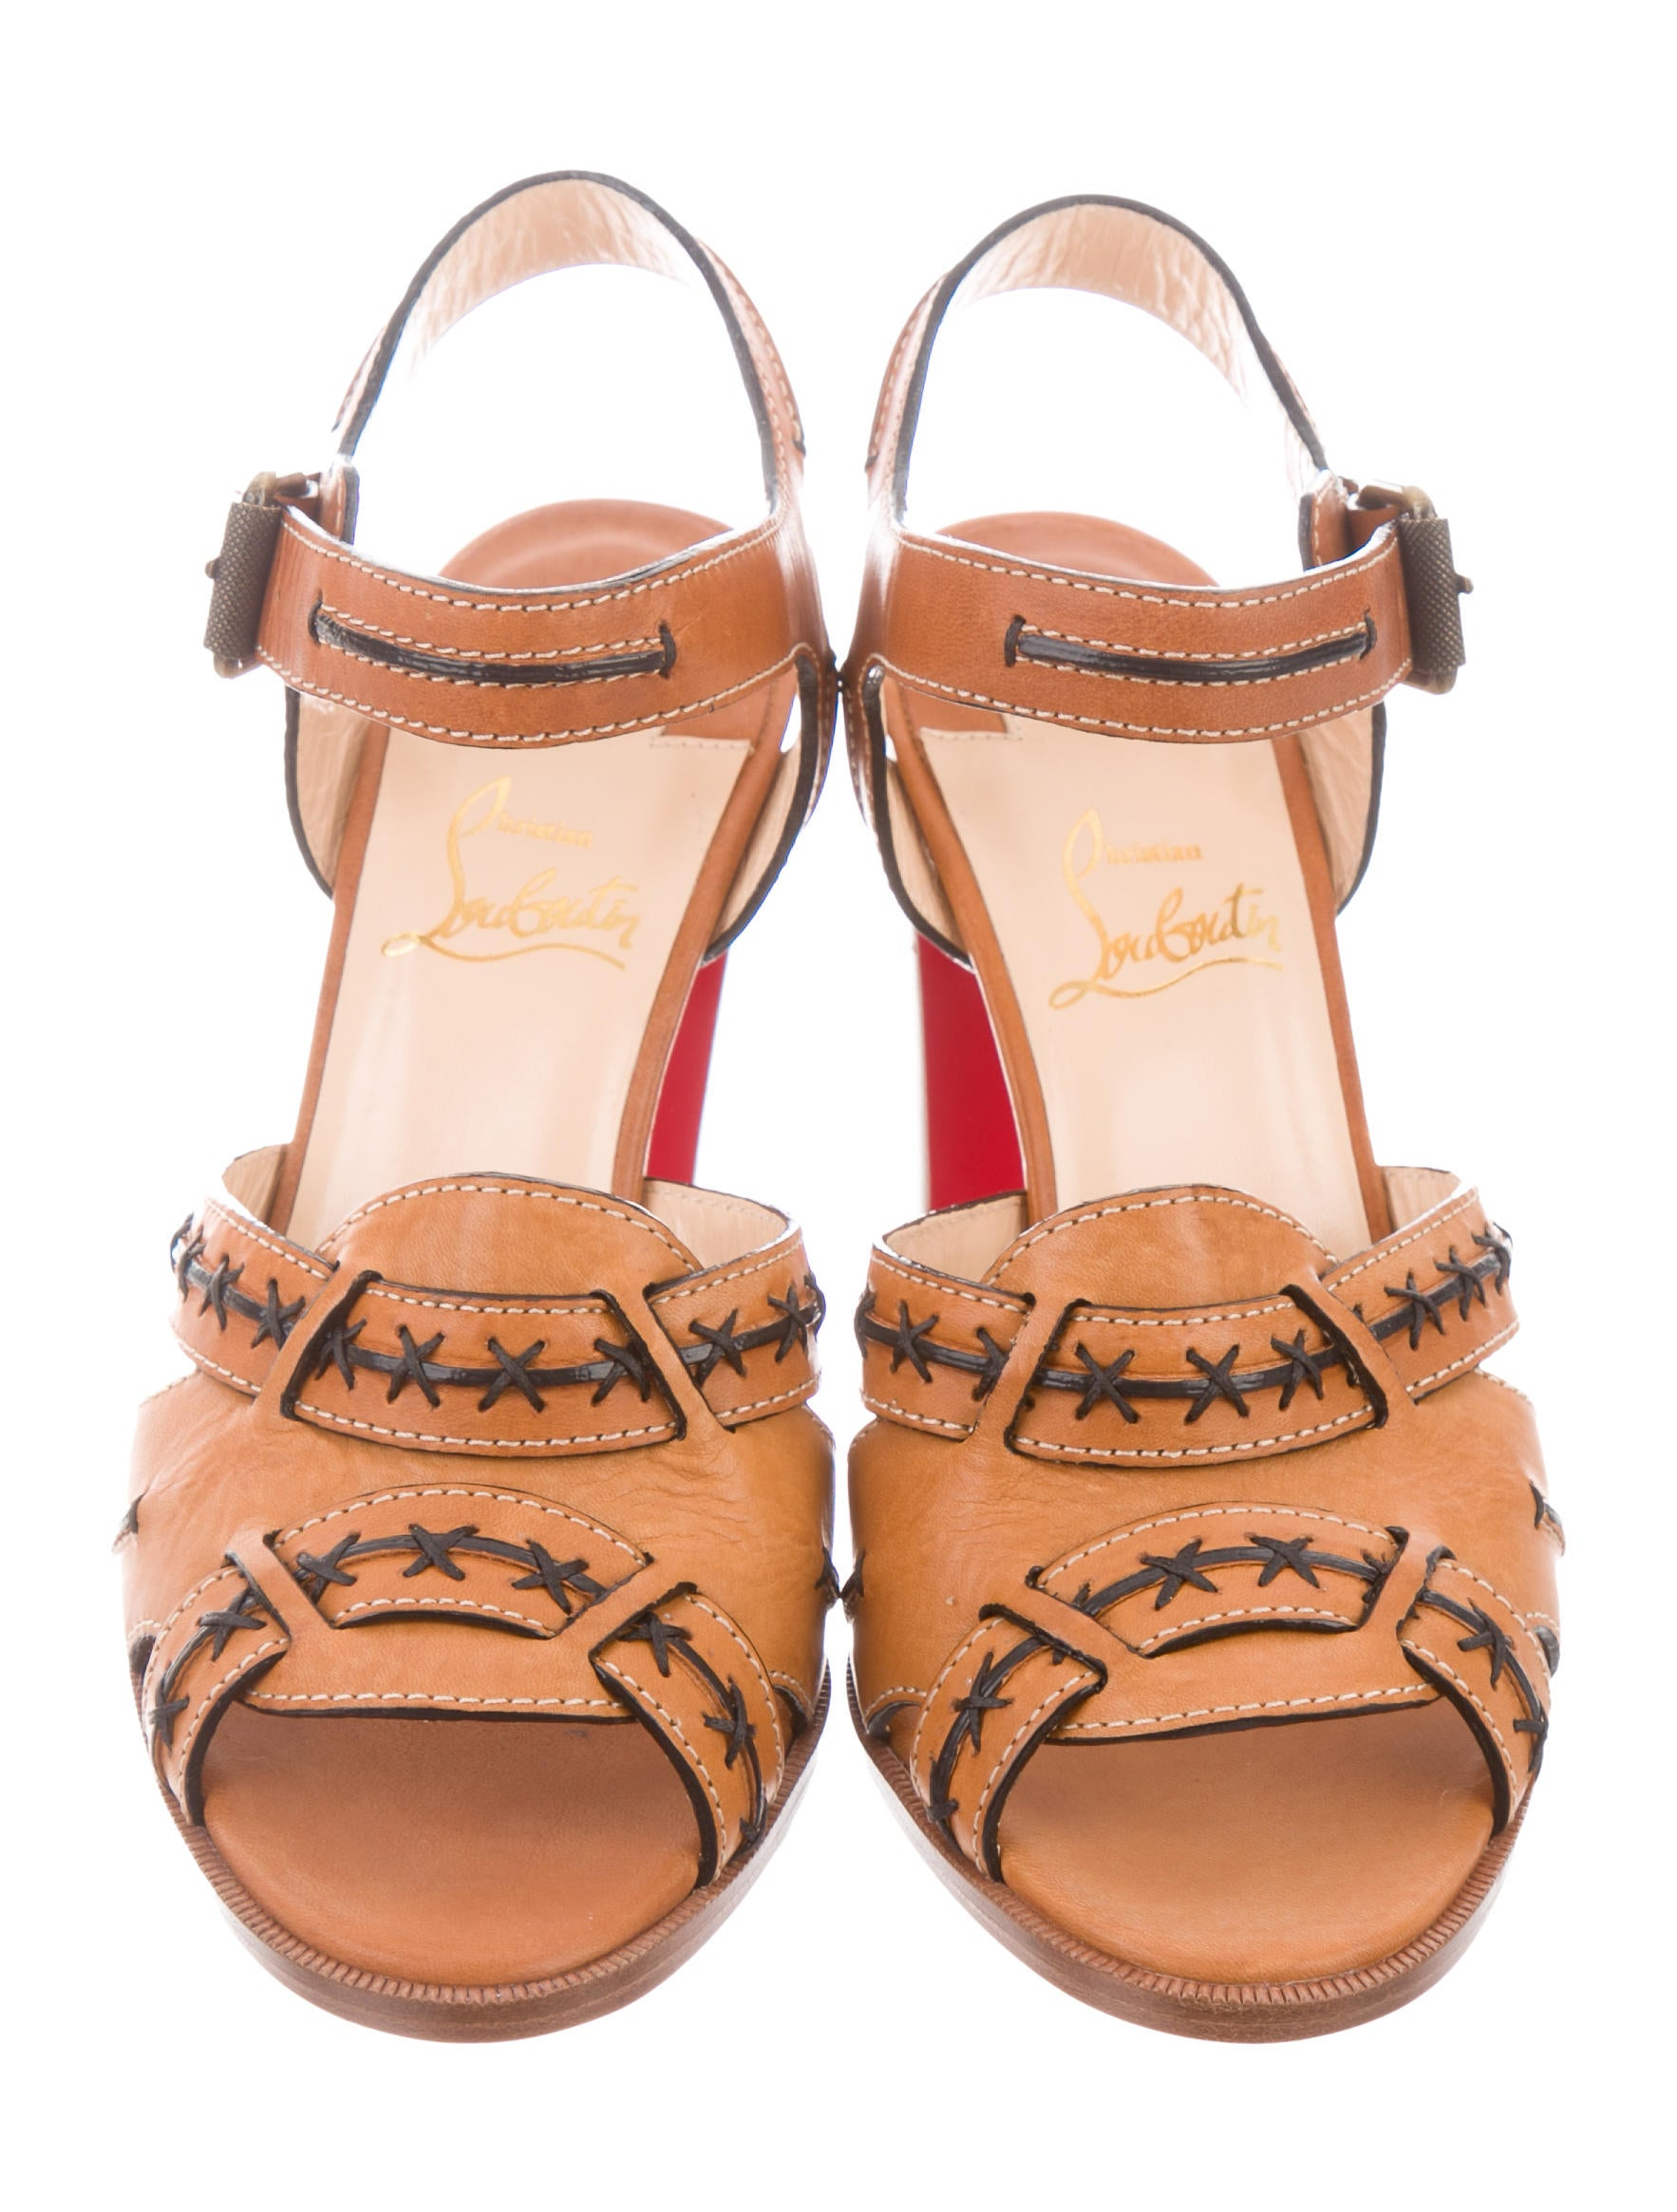 free shipping footlocker pictures Christian Louboutin Valvale 85 Leather Sandals w/ Tags pick a best cheap sale visa payment brand new unisex discount largest supplier SeM5hHSPi